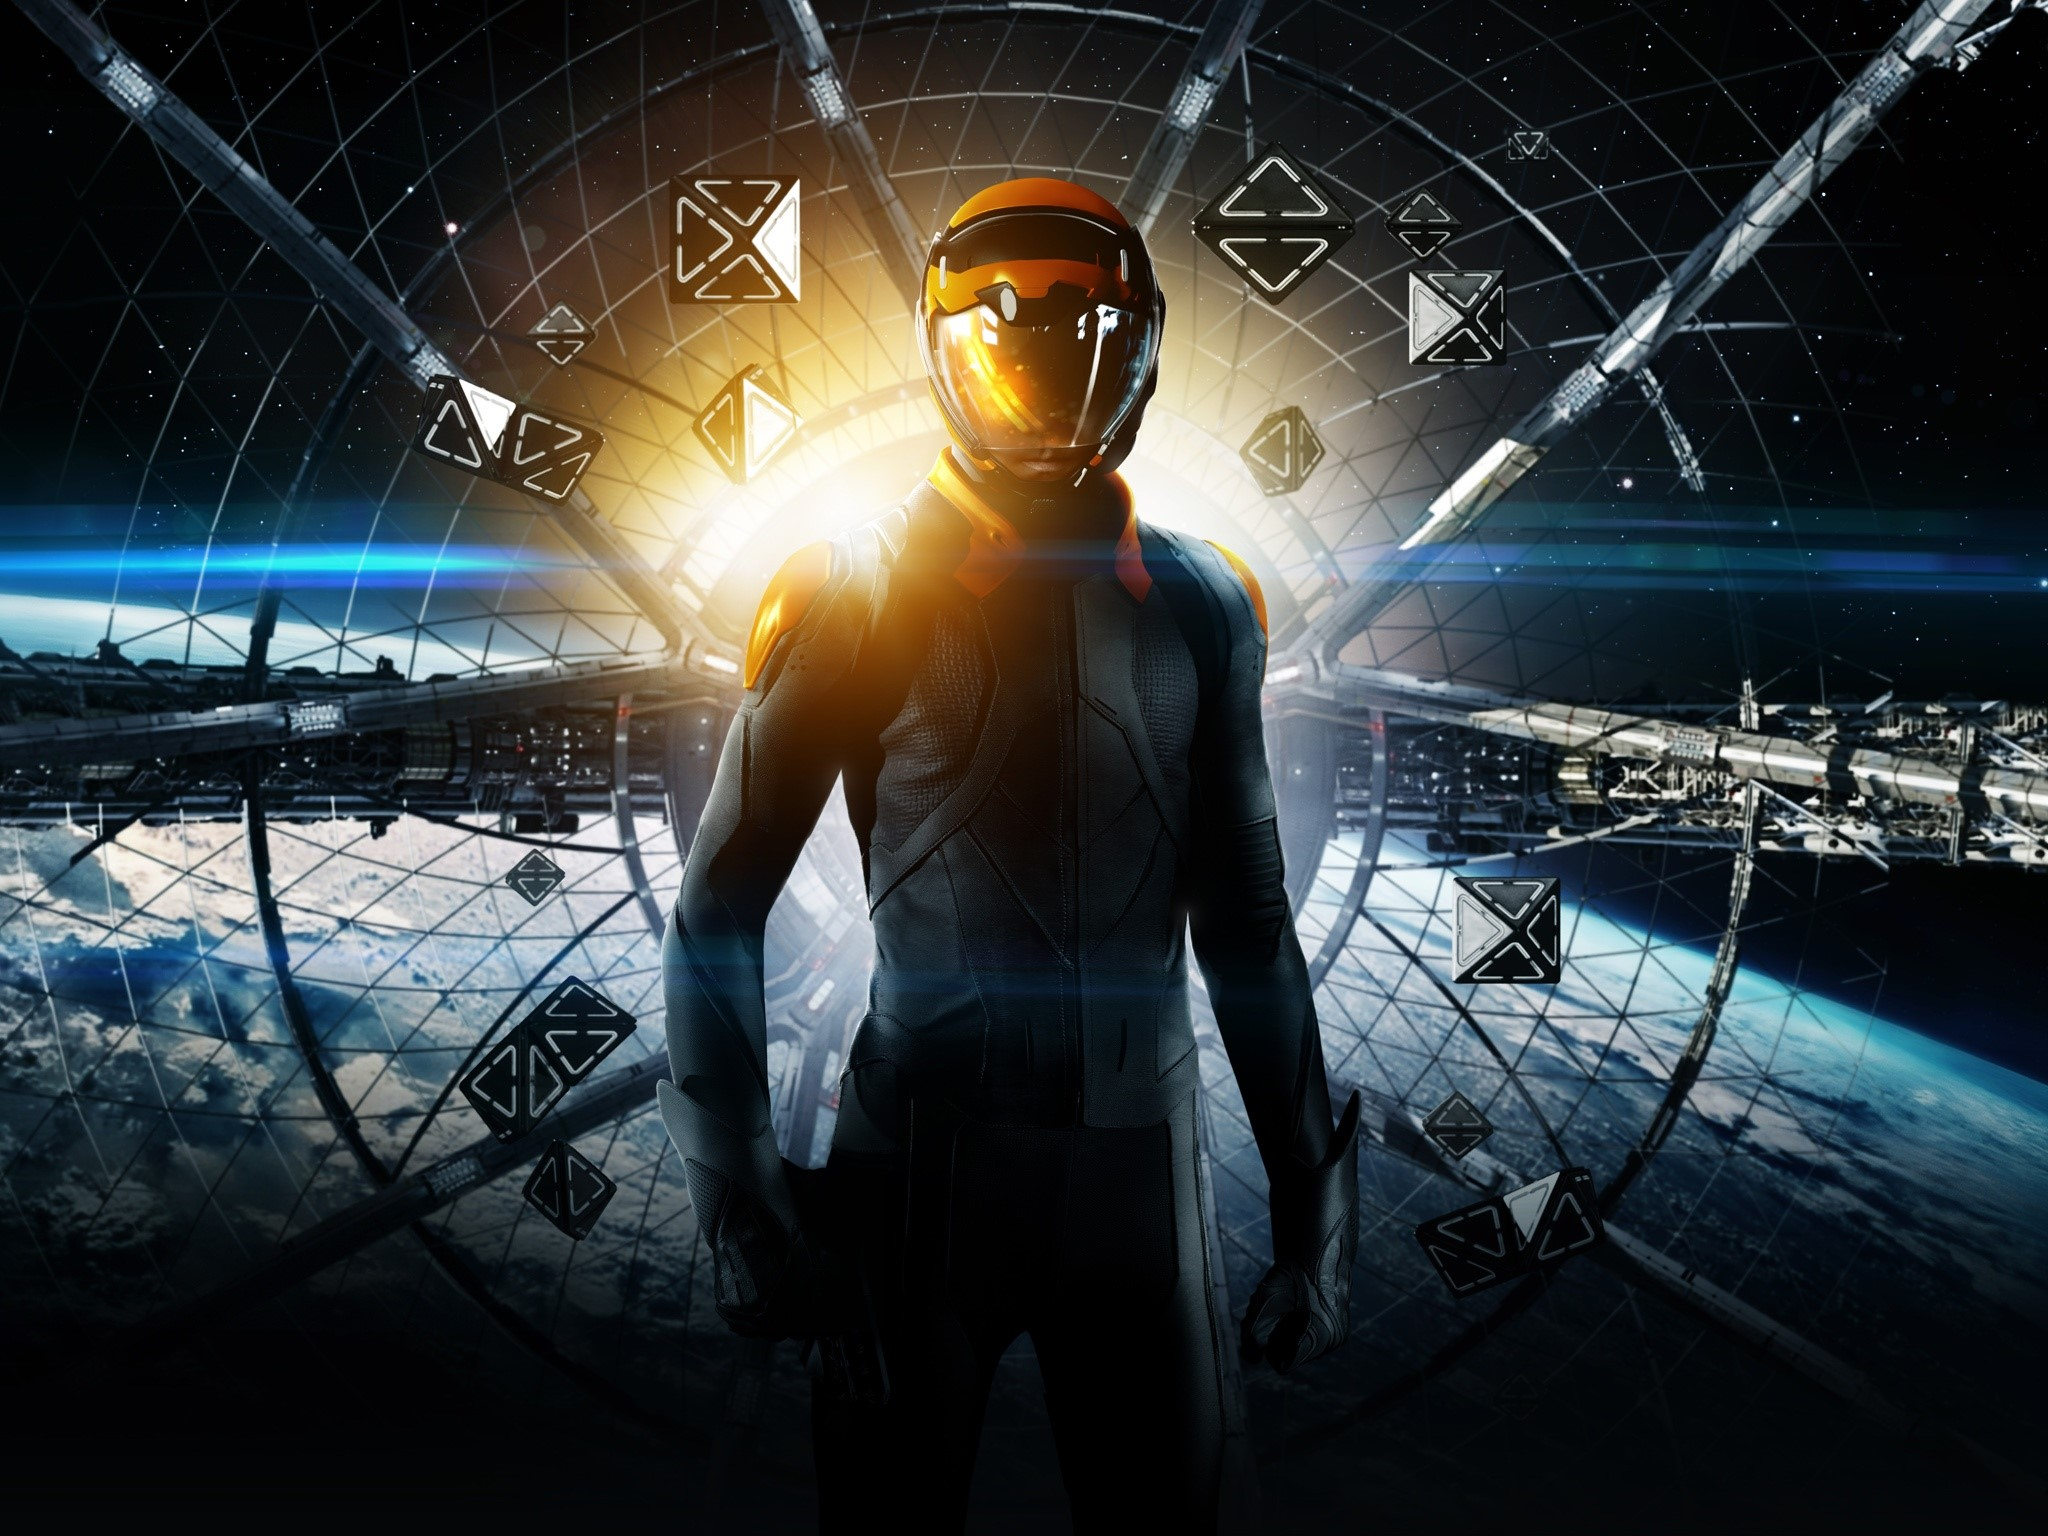 Wallpaper Enders game Images